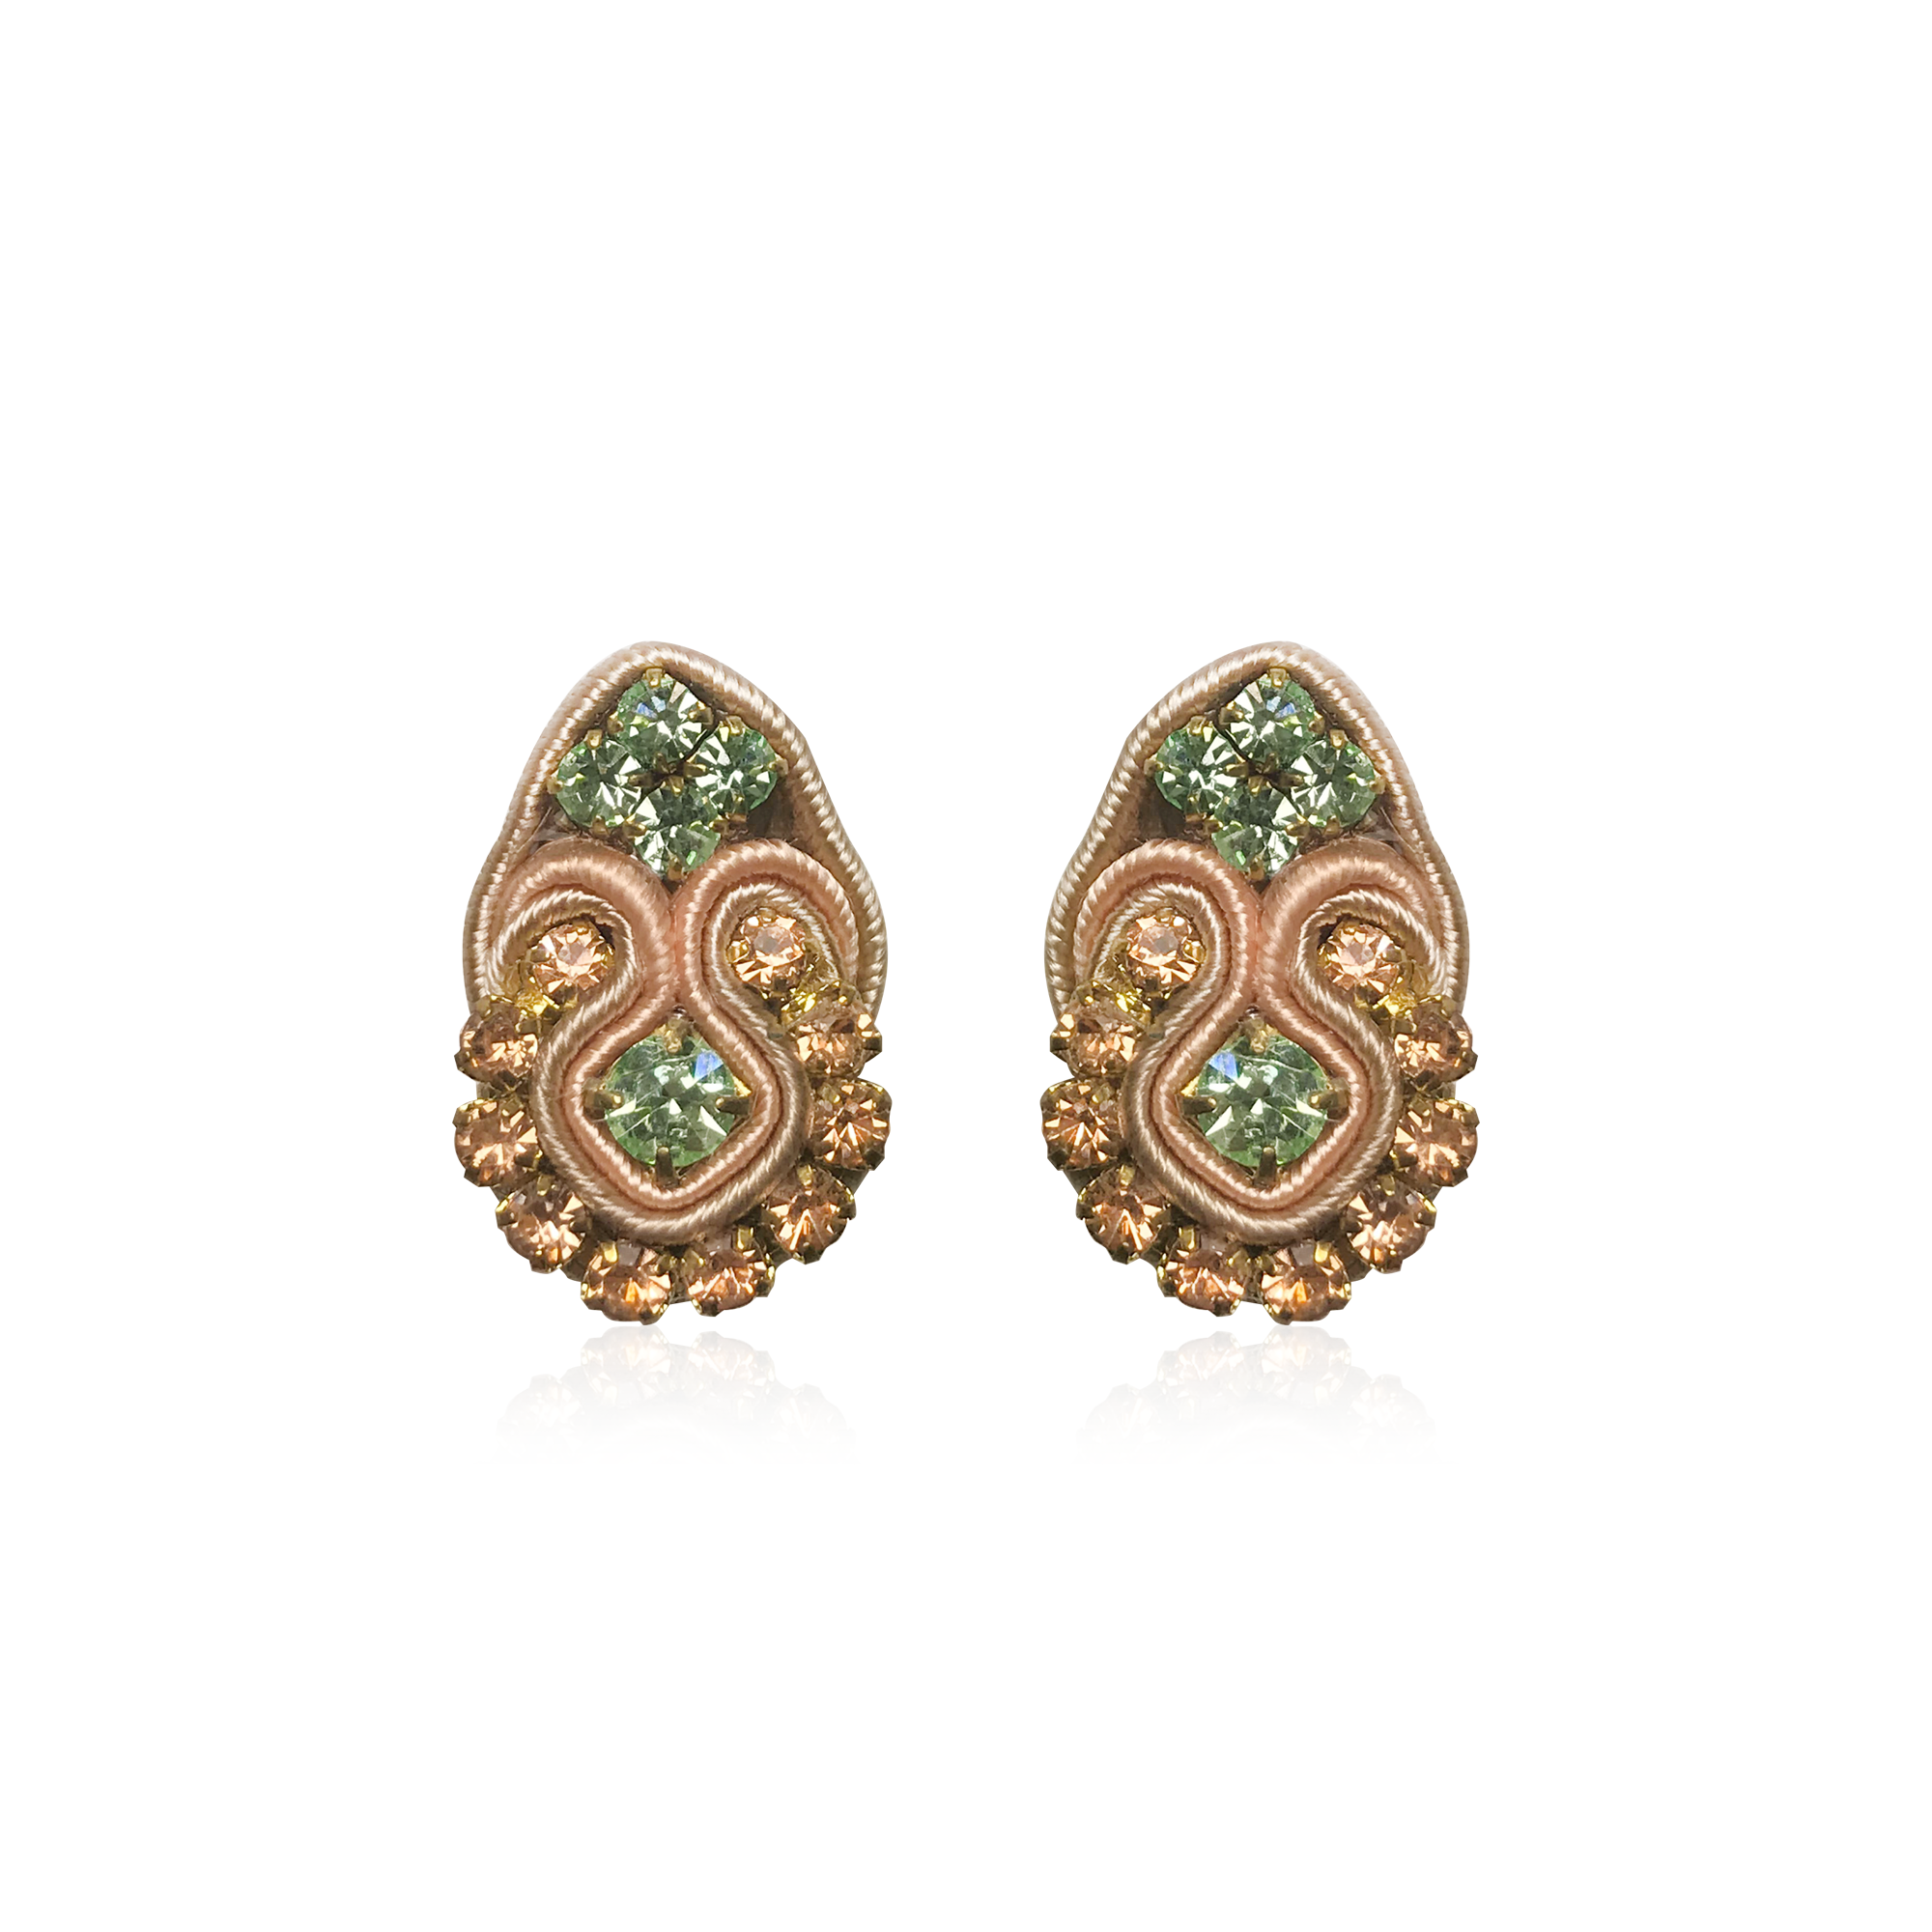 Dopodomani Prosecco Mini Fiore Earrings